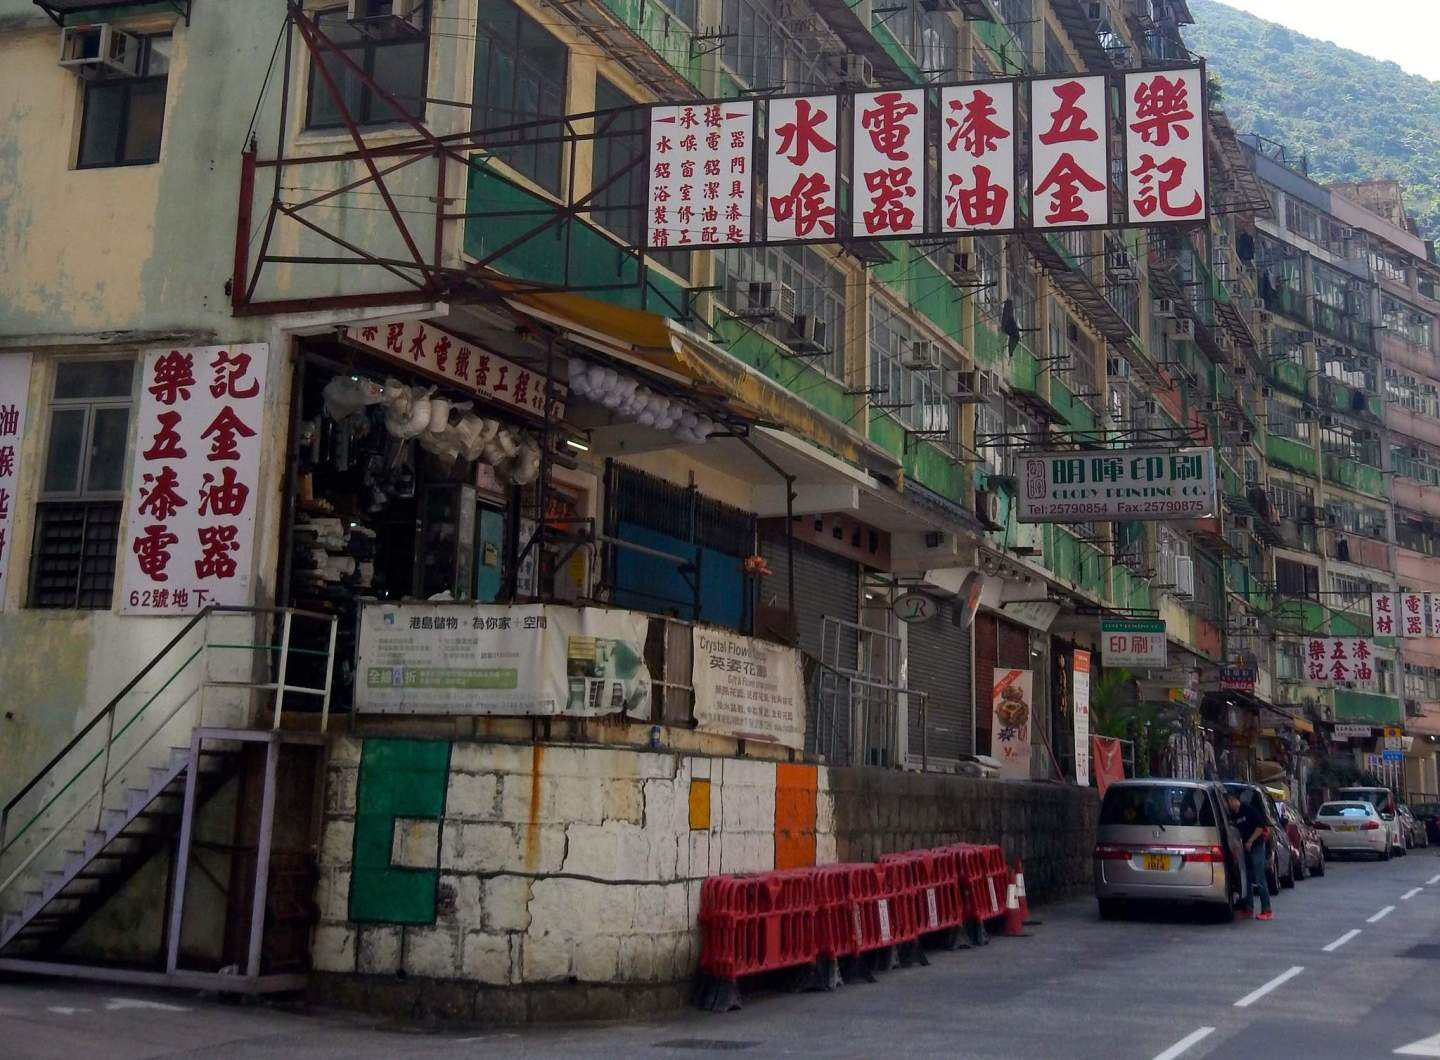 Things to do in Quarry Bay (+ some Insta-worthy spots you don't want to miss!)